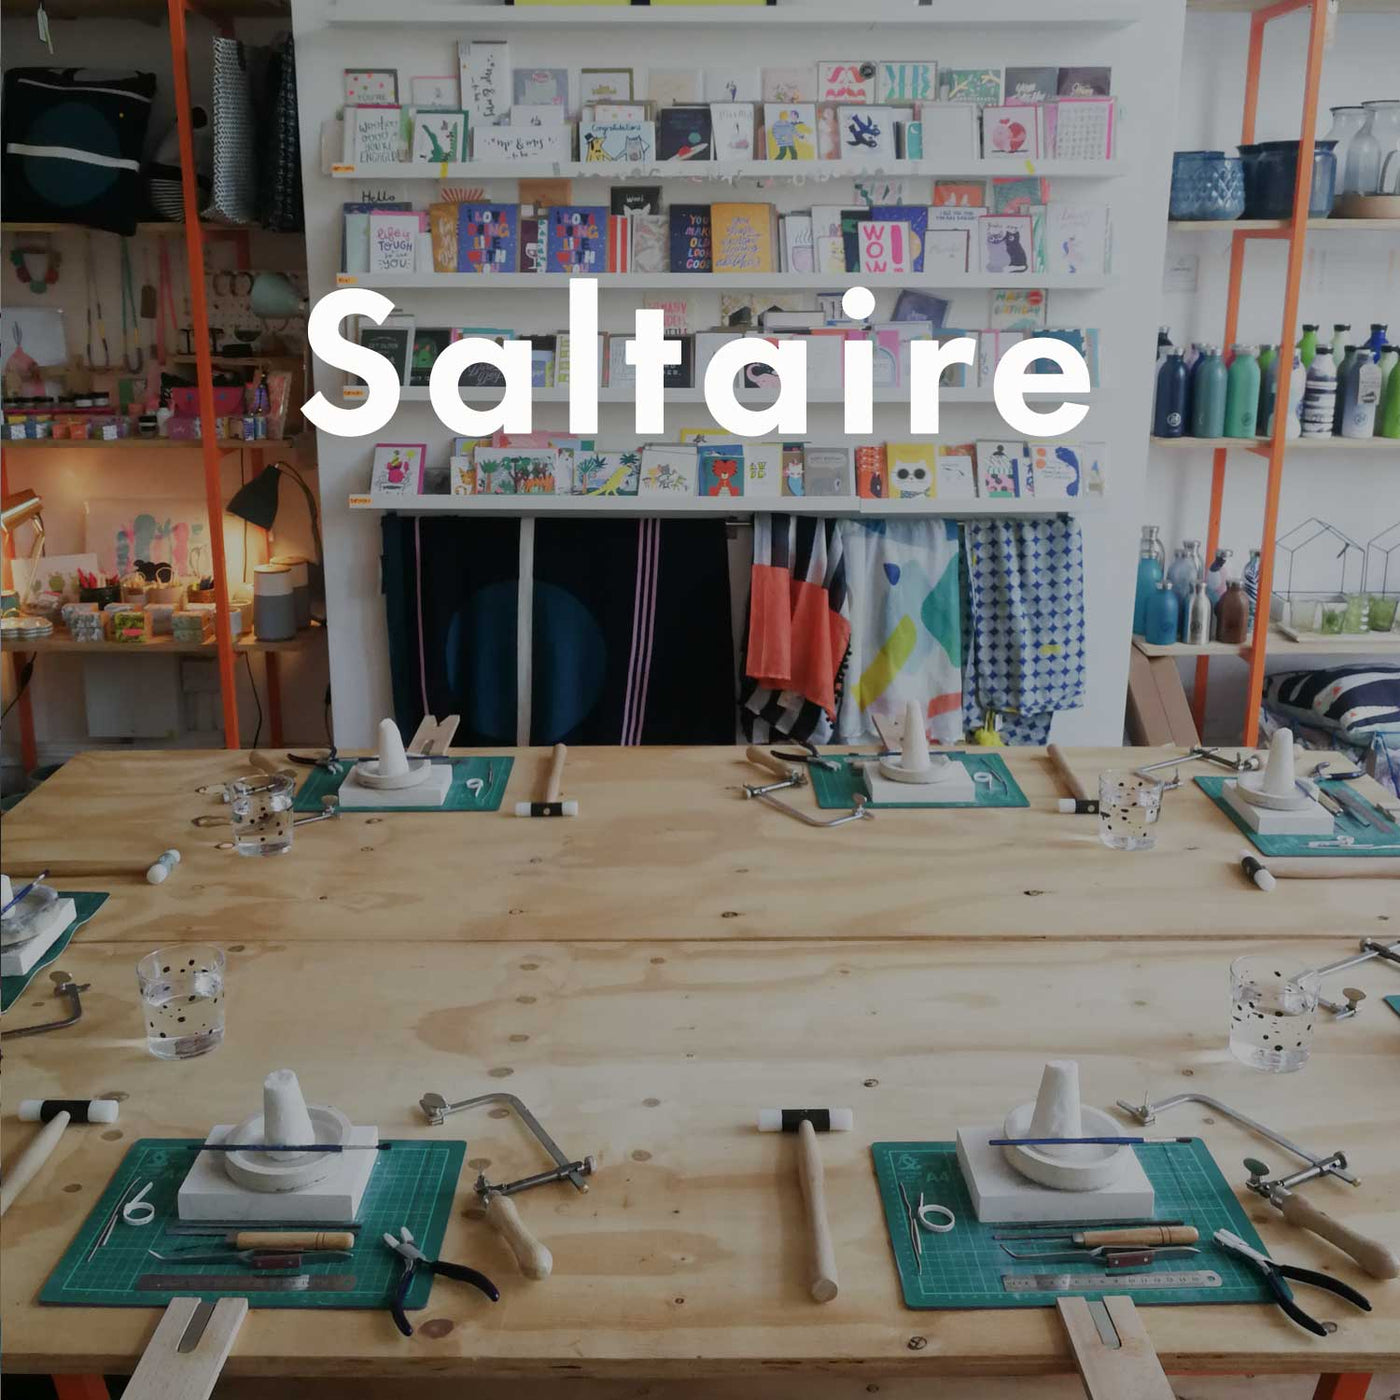 SALTAIRE 'Dot Ring' Workshop